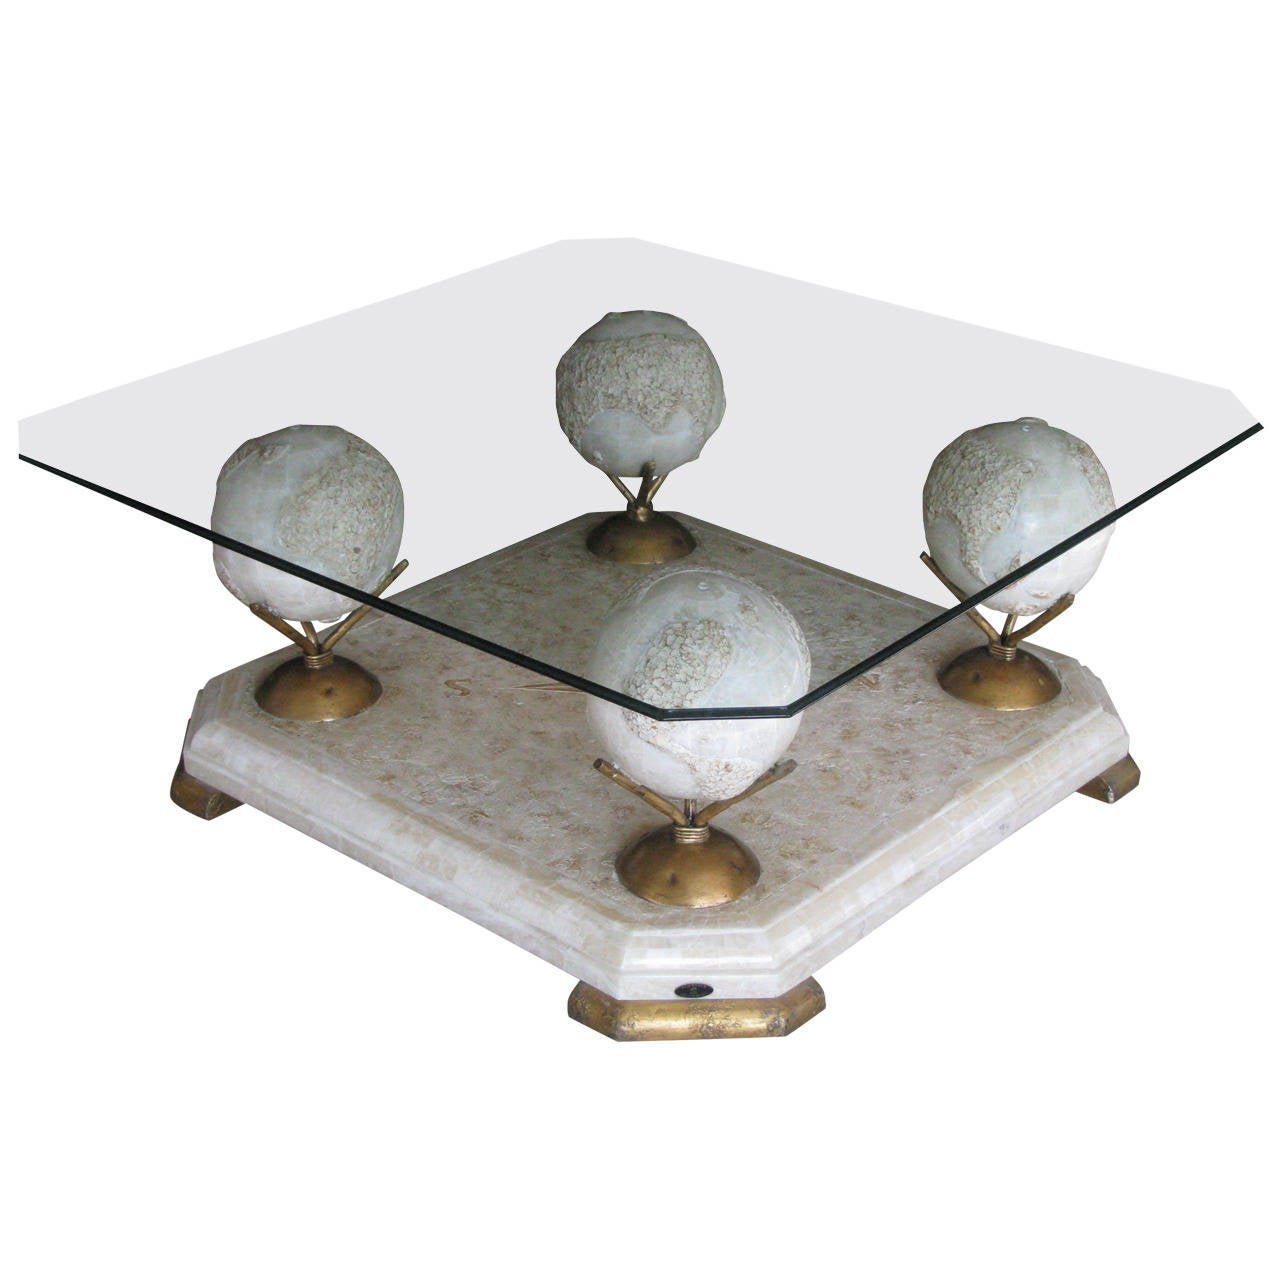 1960s Marble And Glass Coffee Table By Fournier, Paris 1